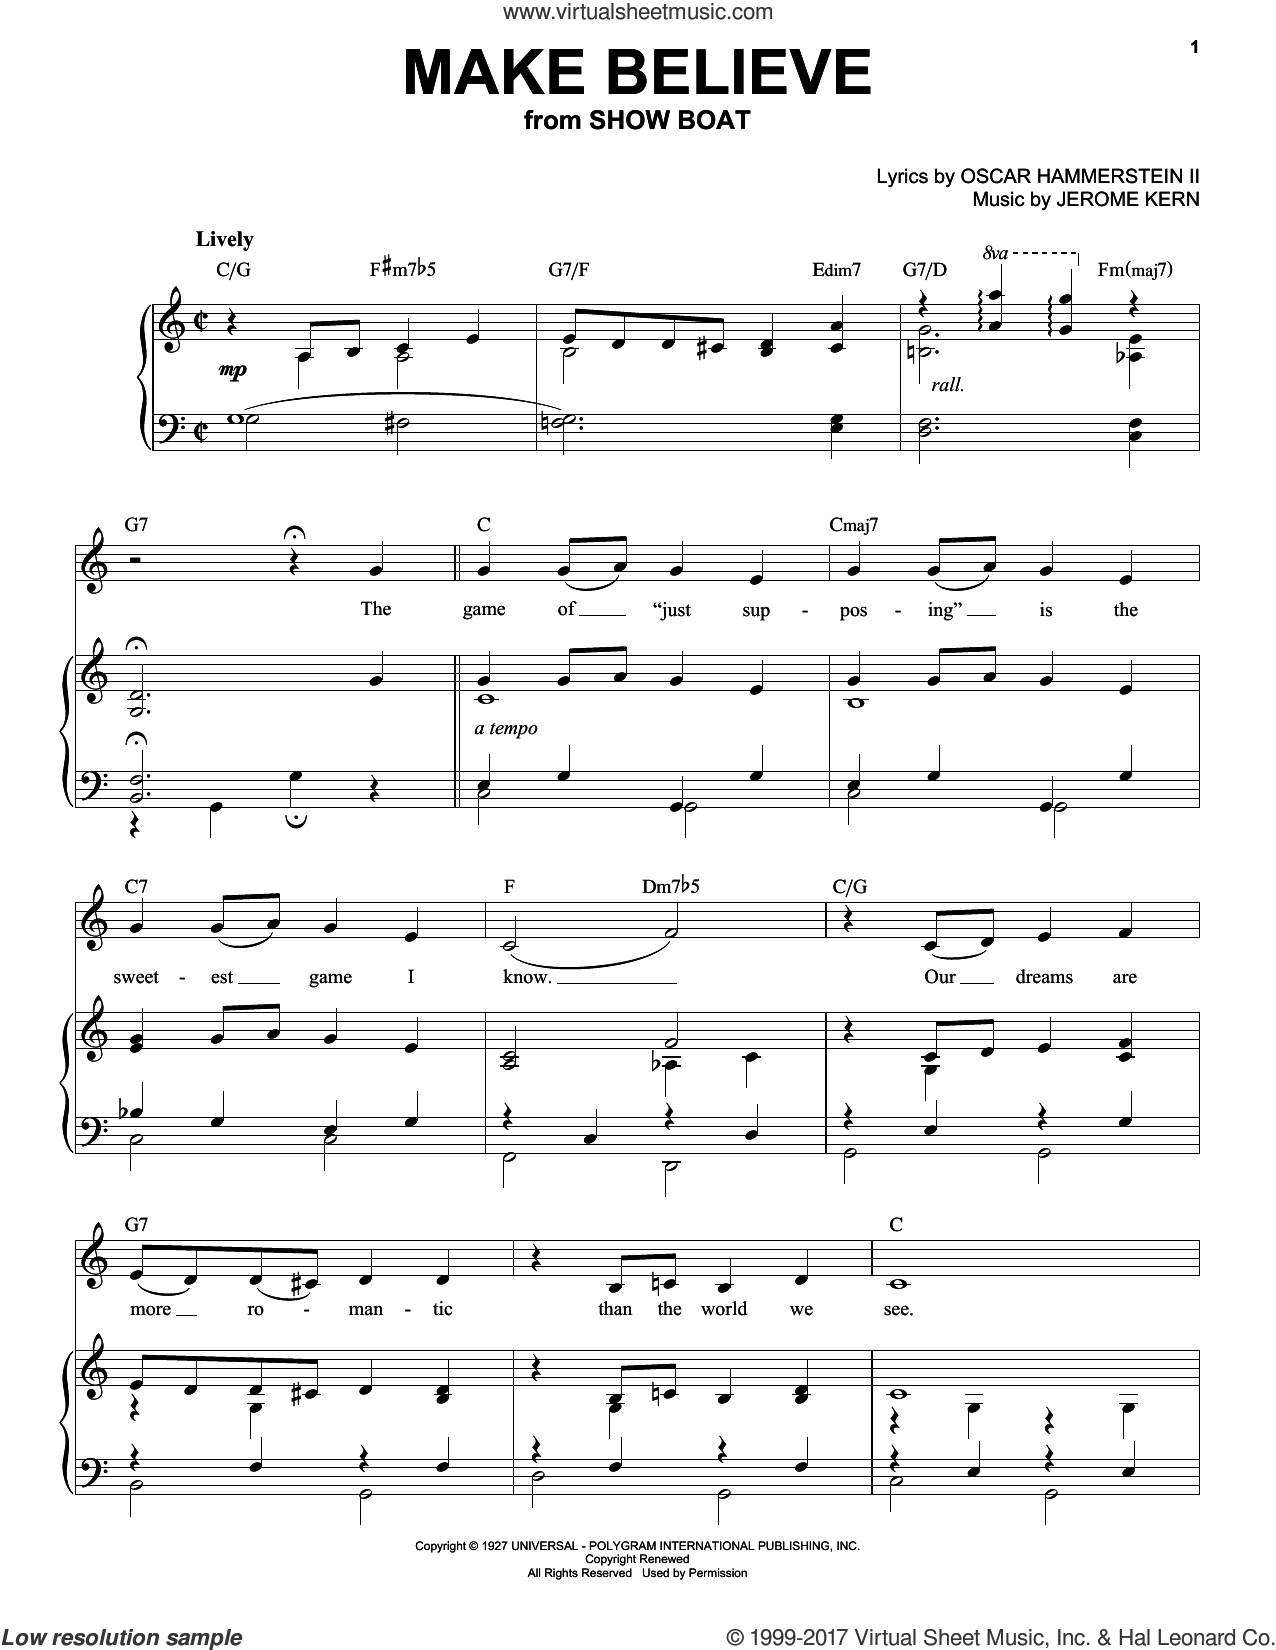 Make Believe sheet music for voice and piano (High Voice) by Oscar II Hammerstein and Jerome Kern, intermediate